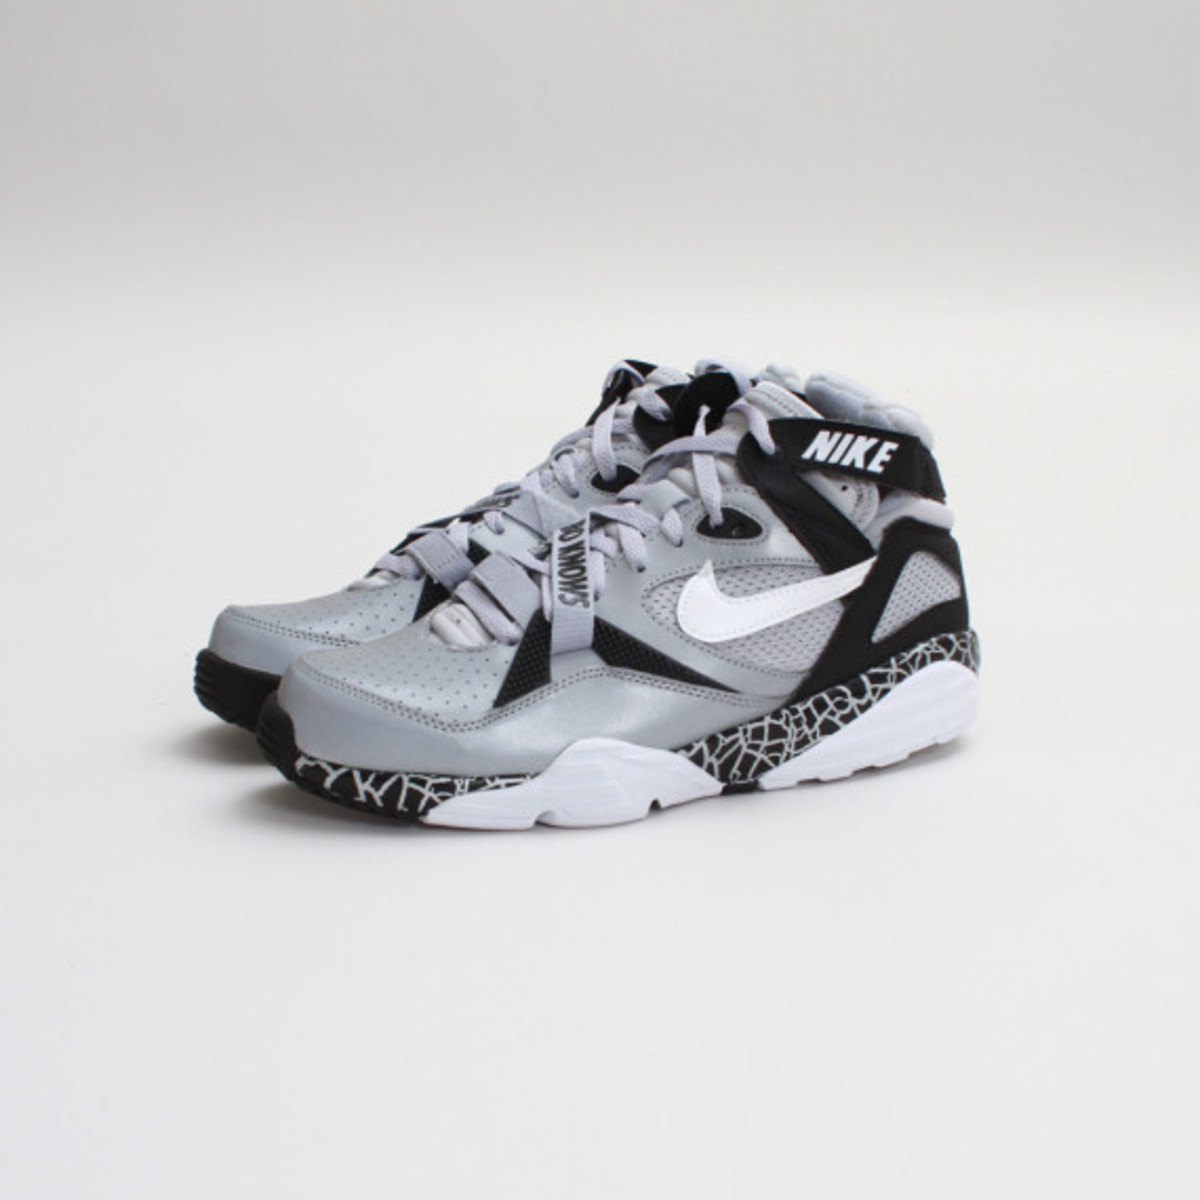 nike-air-trainer-max-91-bo-knows-3